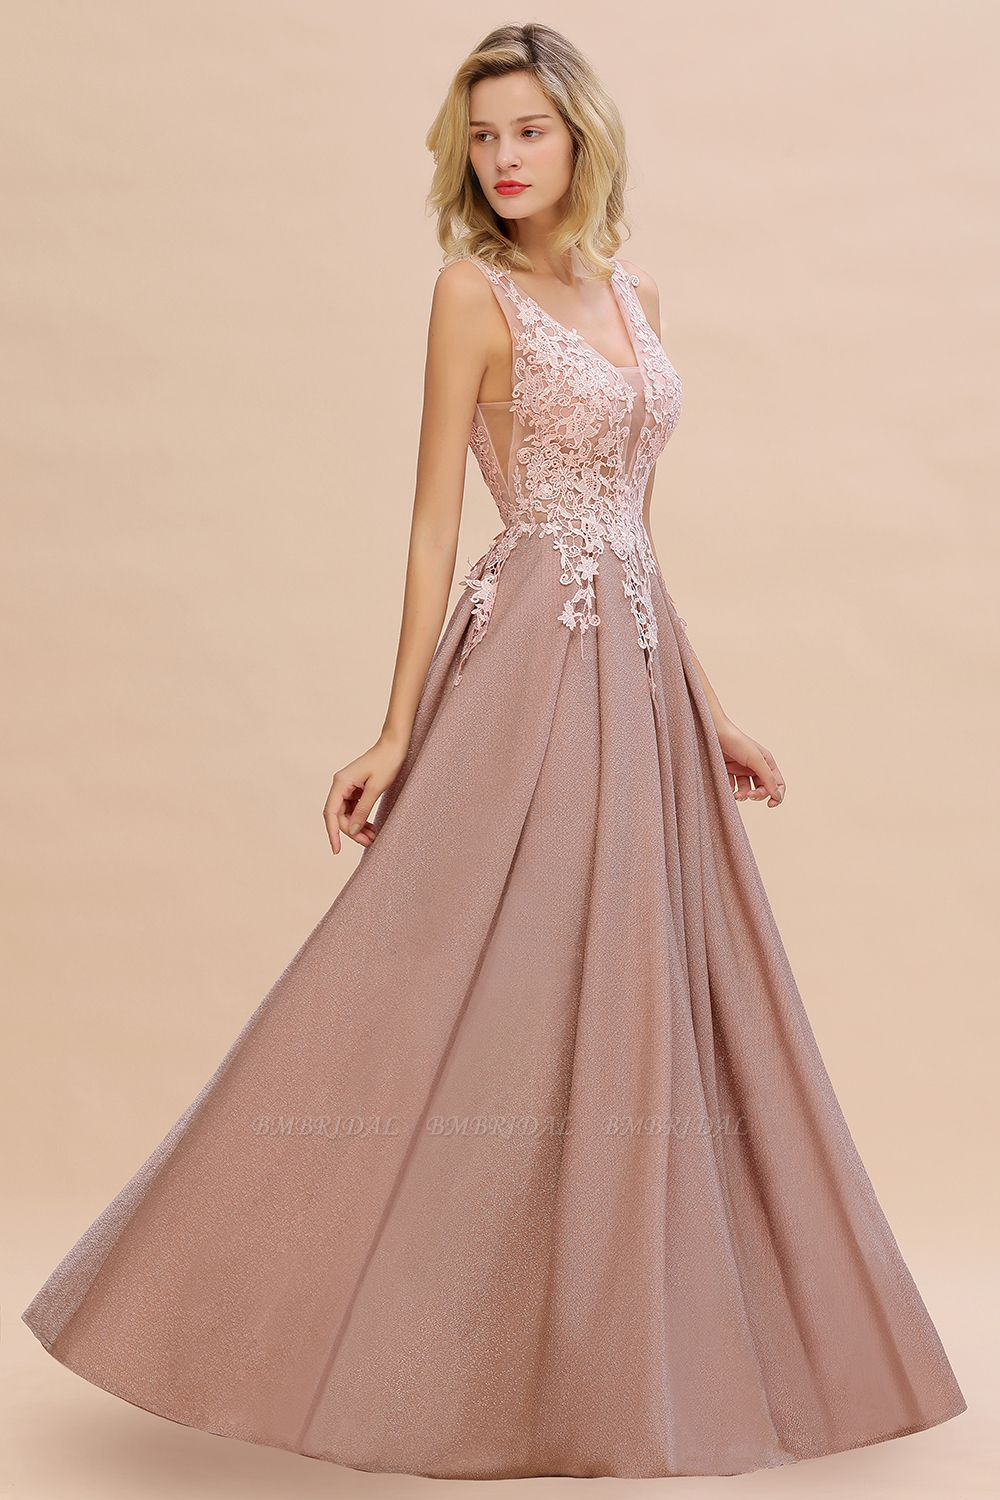 BMbridal Dusty Pink V-Neck Long Prom Dress With Lace Appliques Online